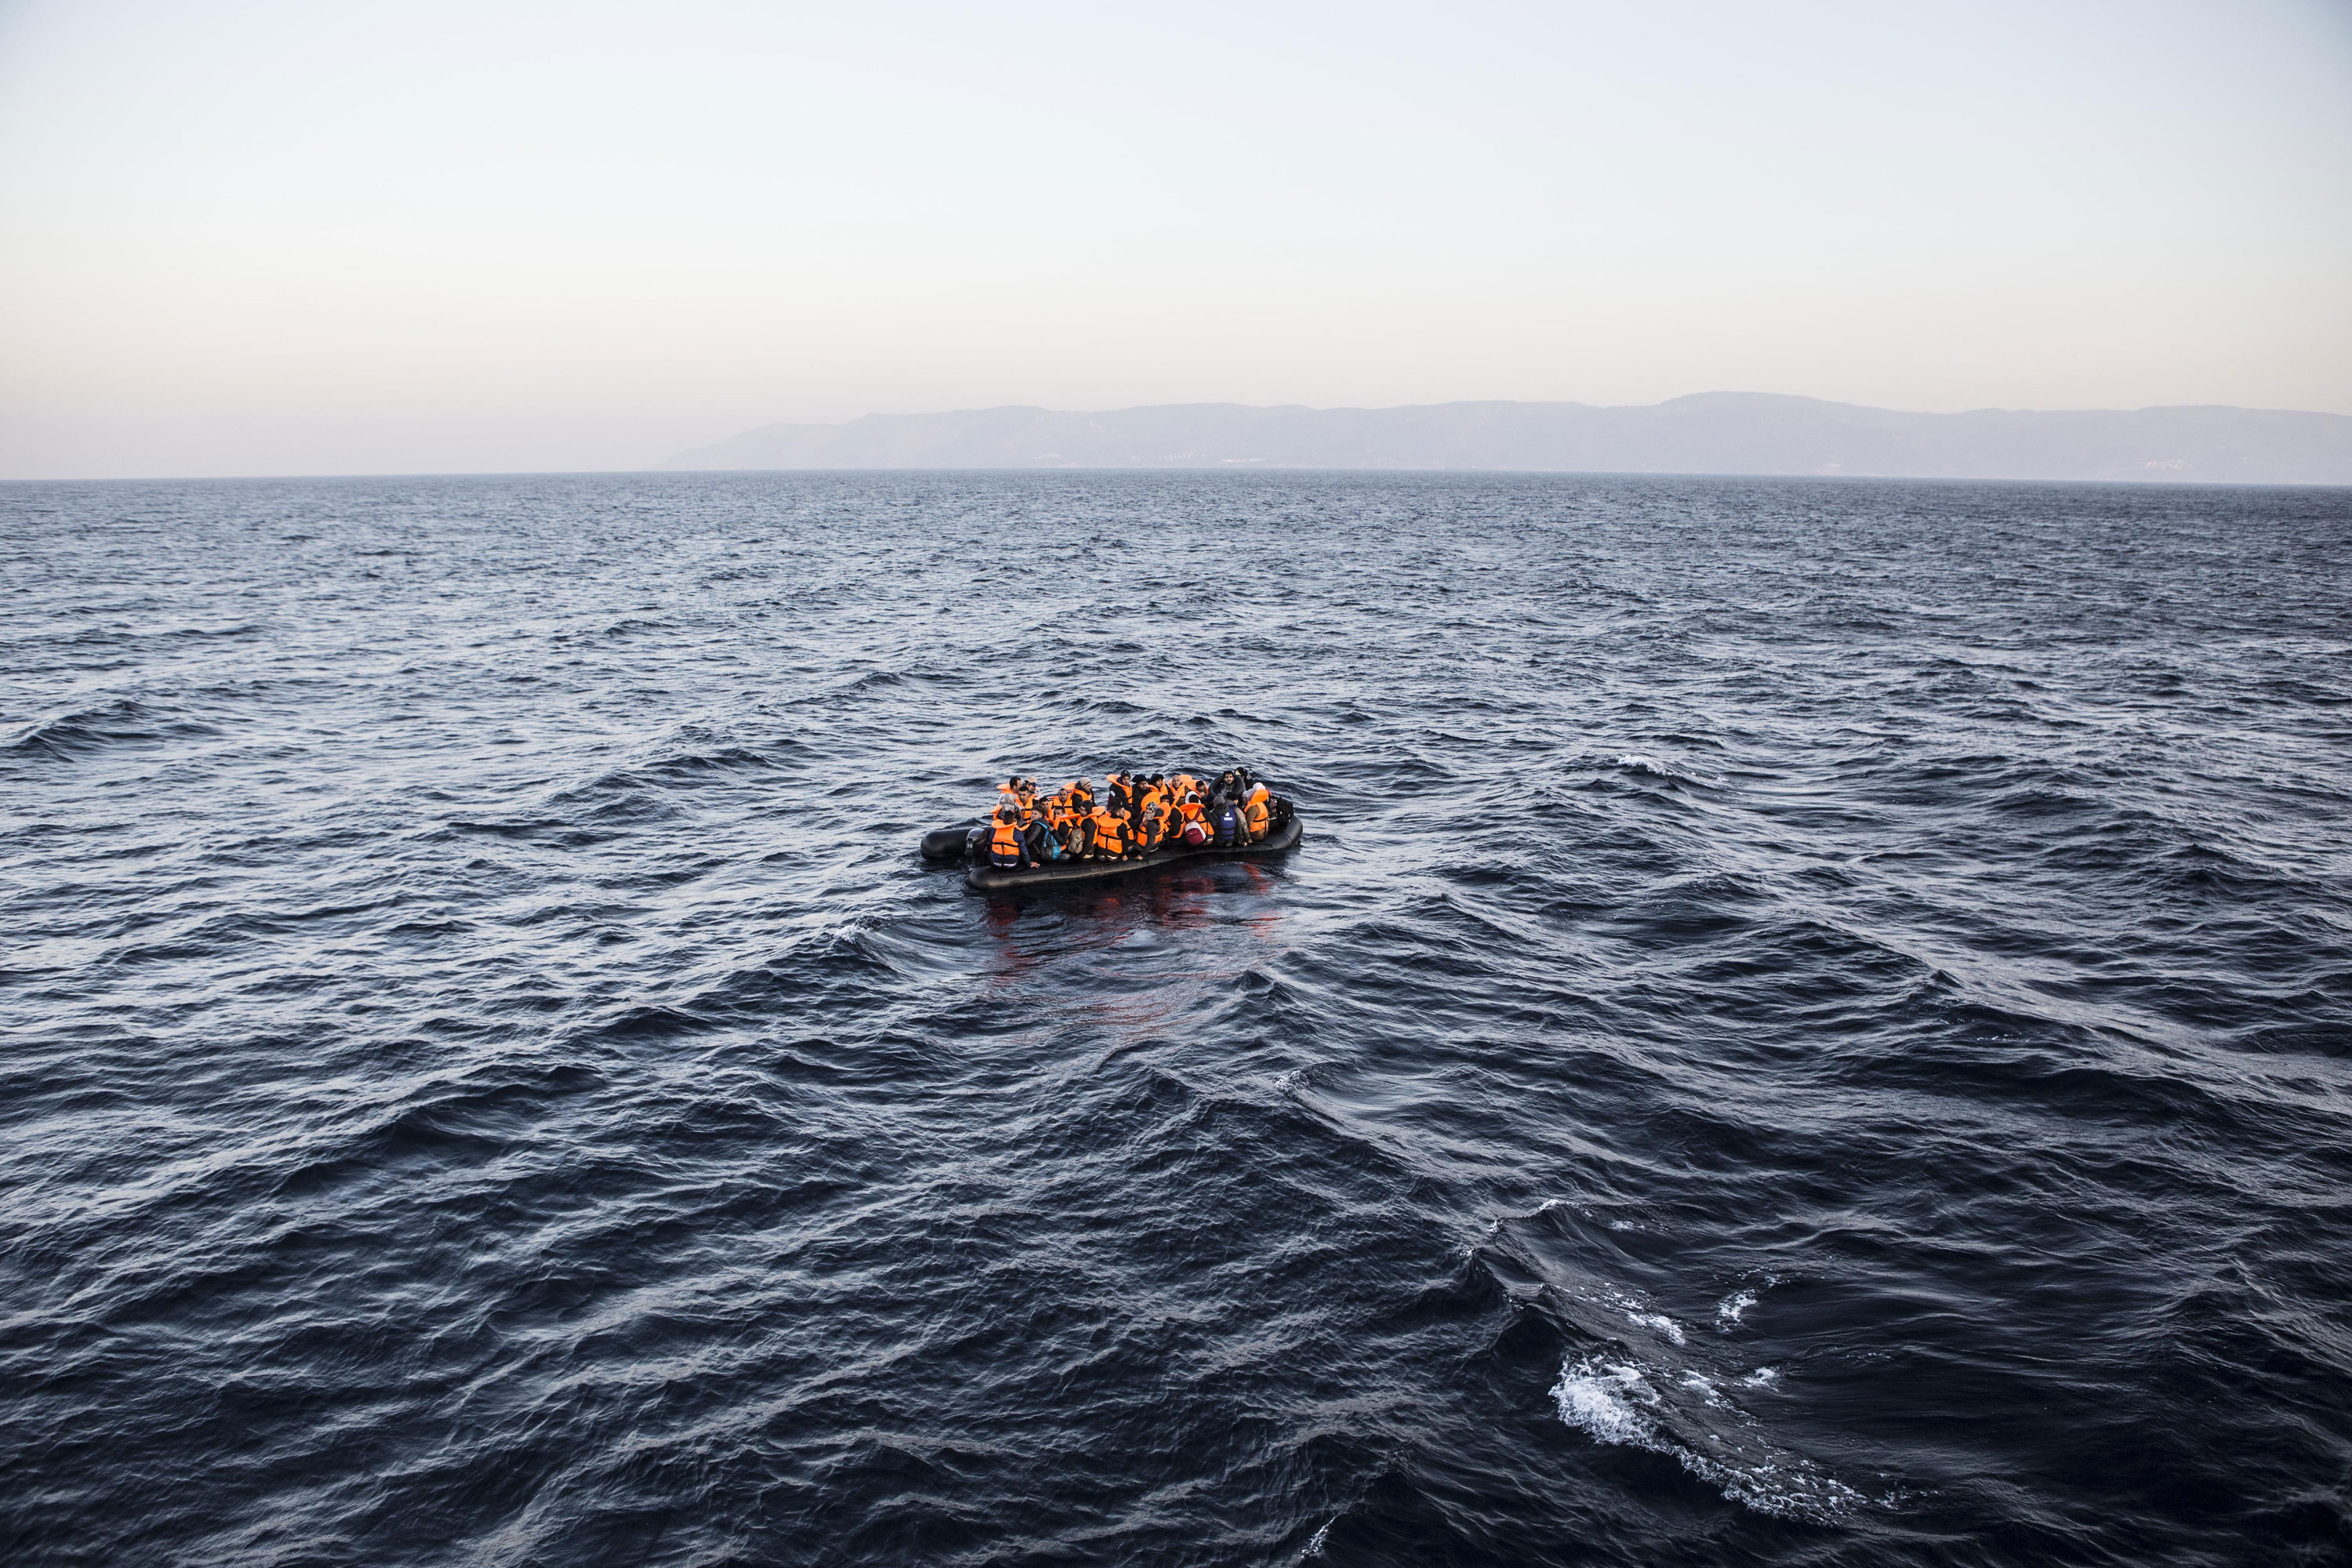 An inflatable boat full of refugees sails off the Greek island of Lesbos after leaving Turkish waters. [Anna Pantelia/Al Jazeera]